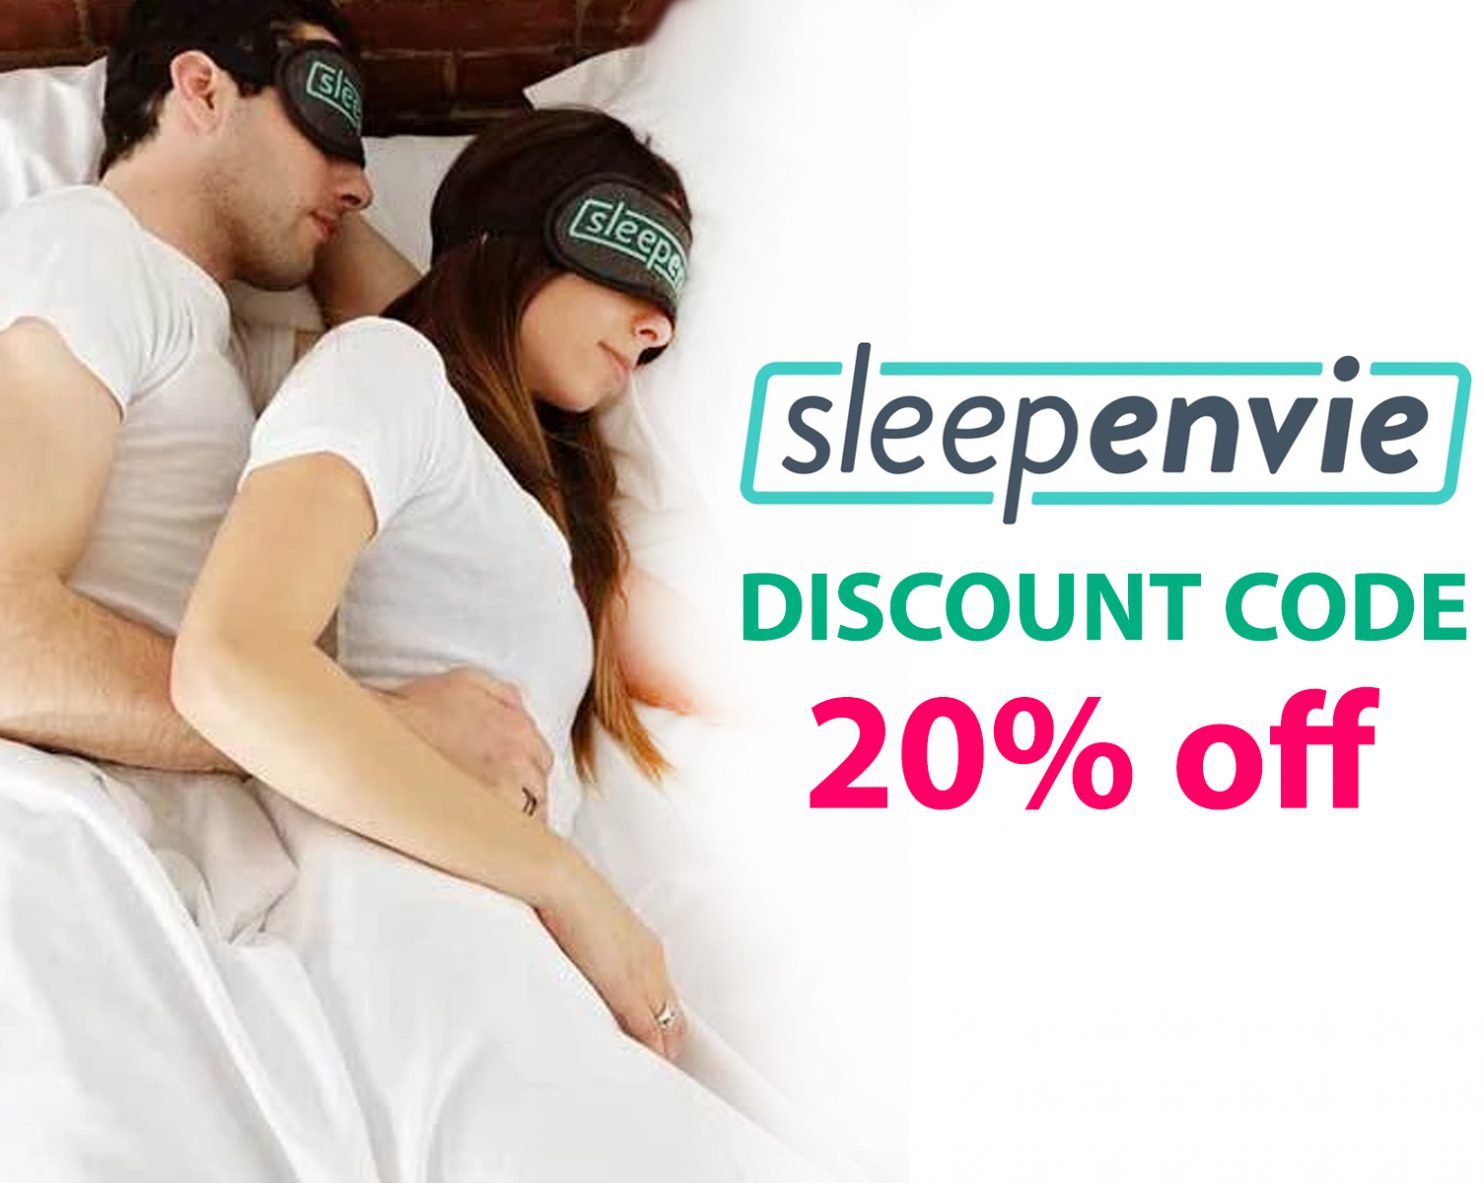 SleepEnvie Discount Code | Get 20% off